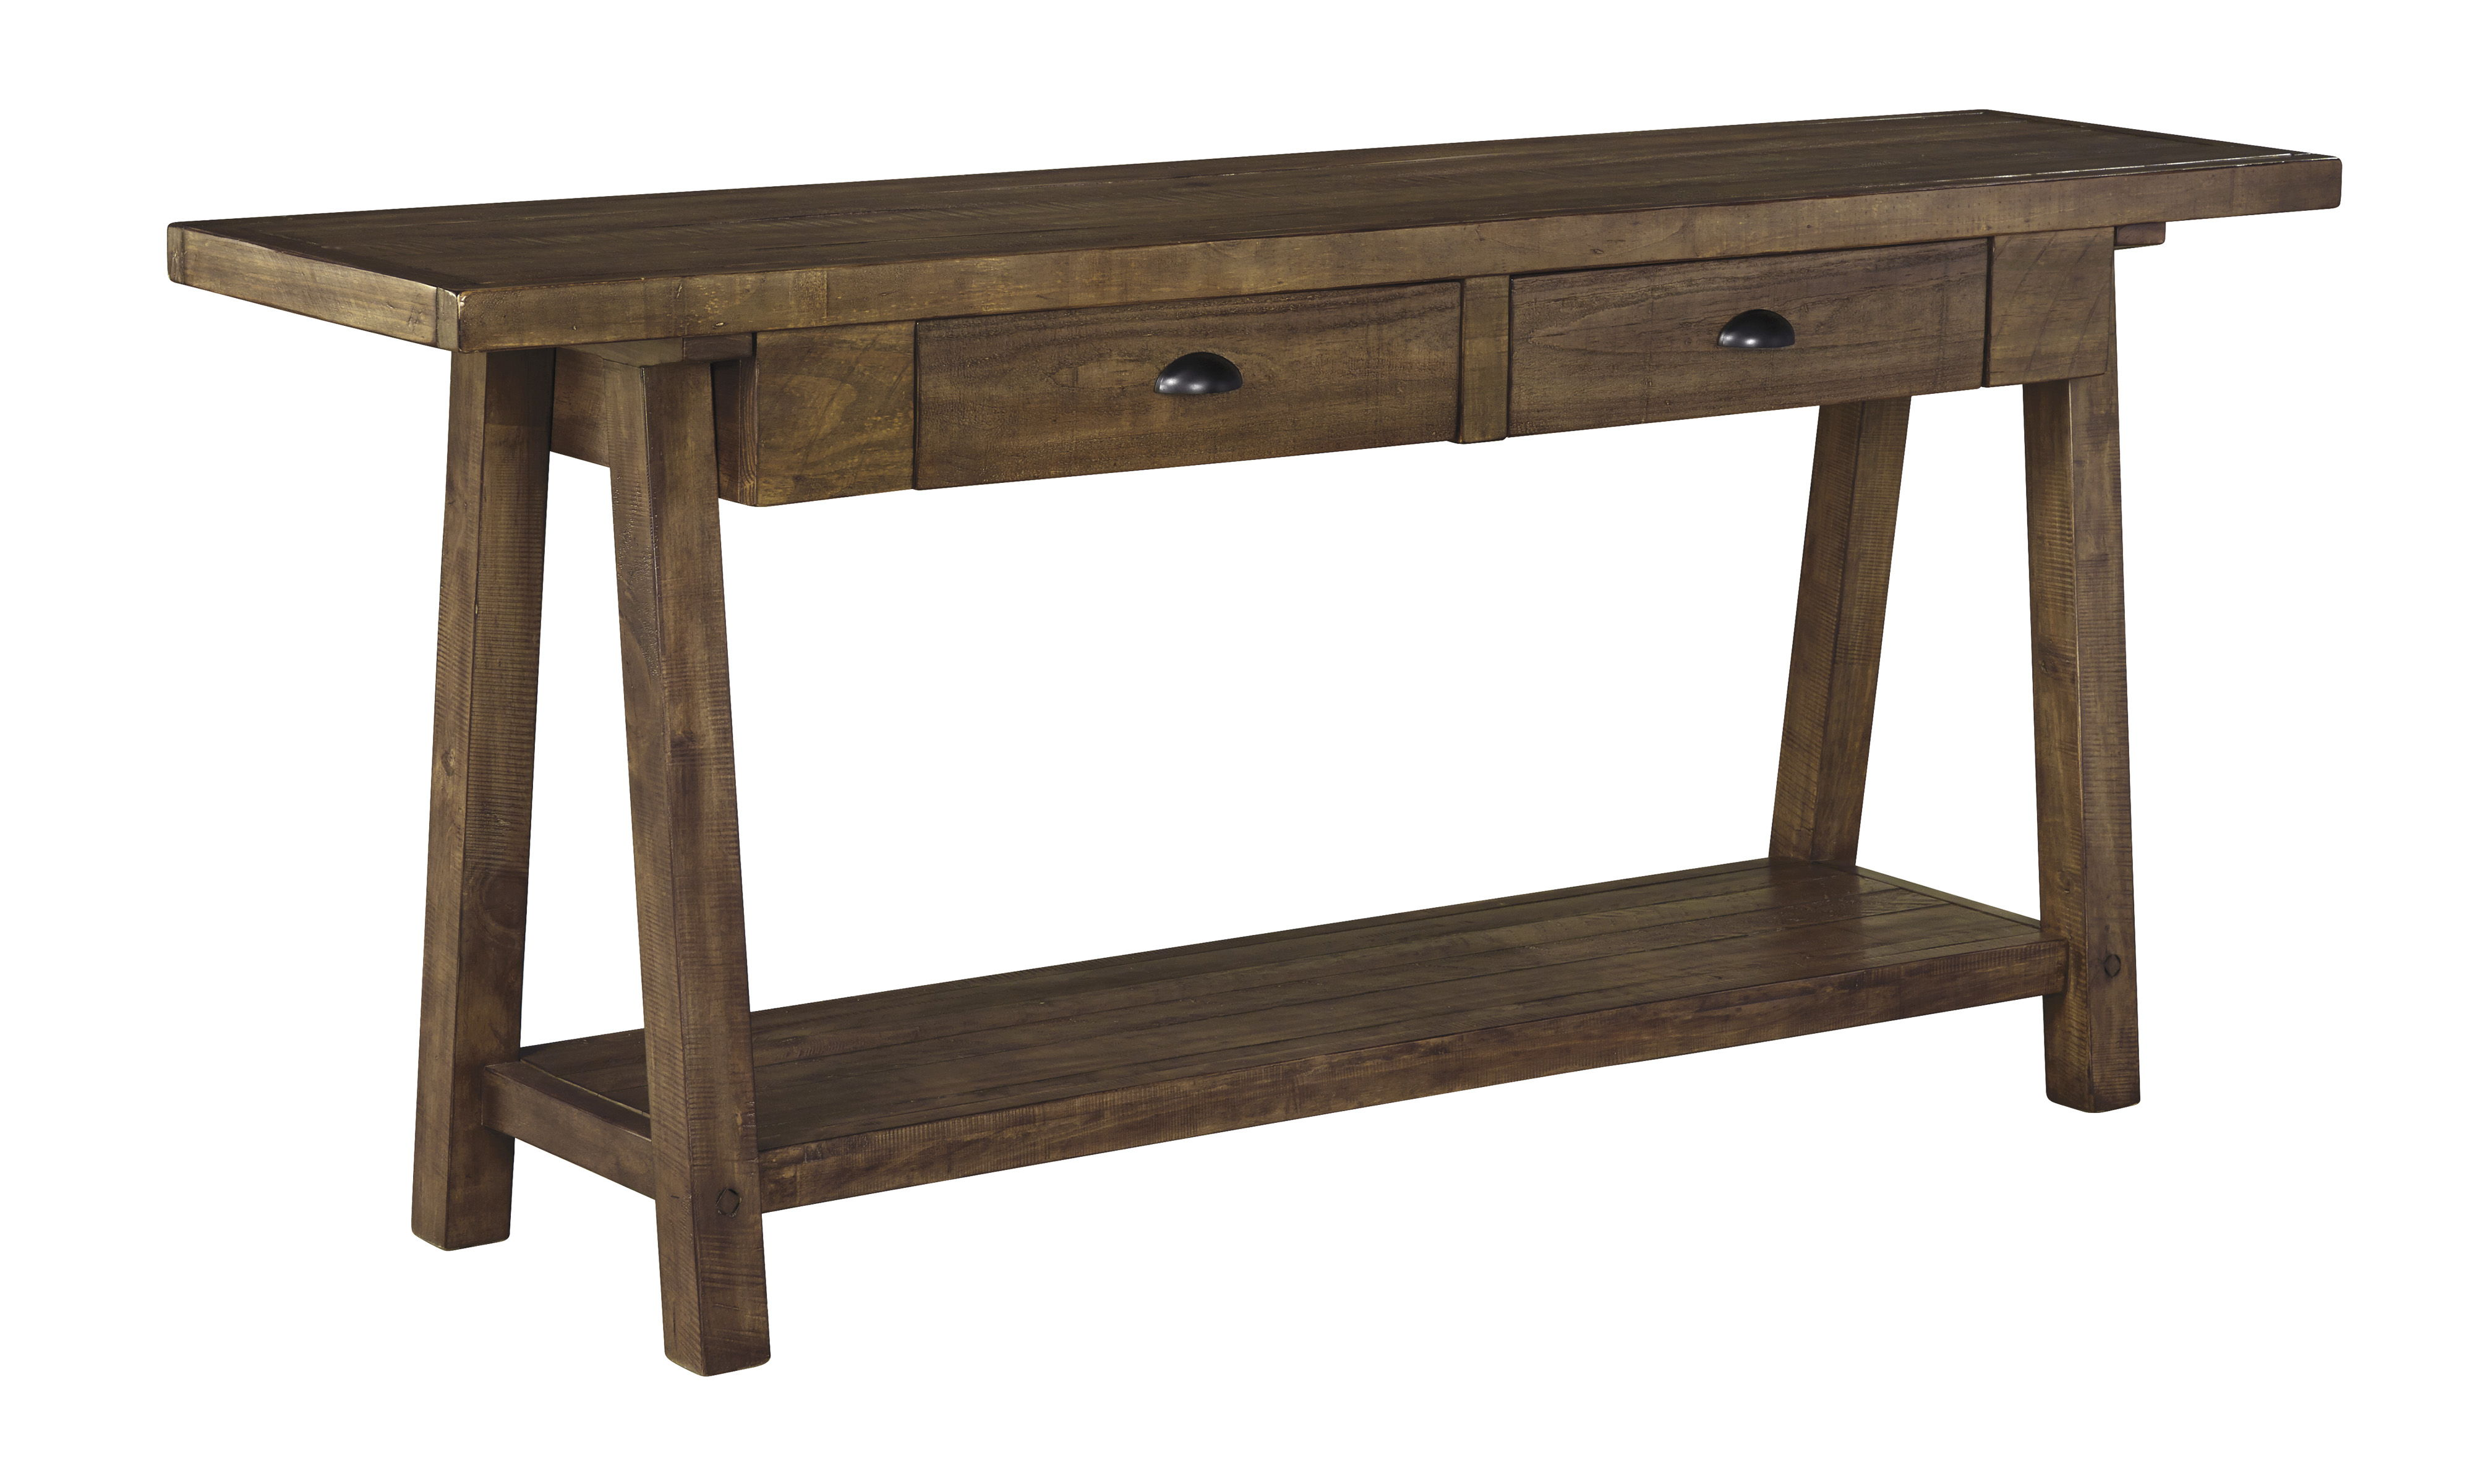 Ashley Furniture Dondie Sofa Table The Classy Home